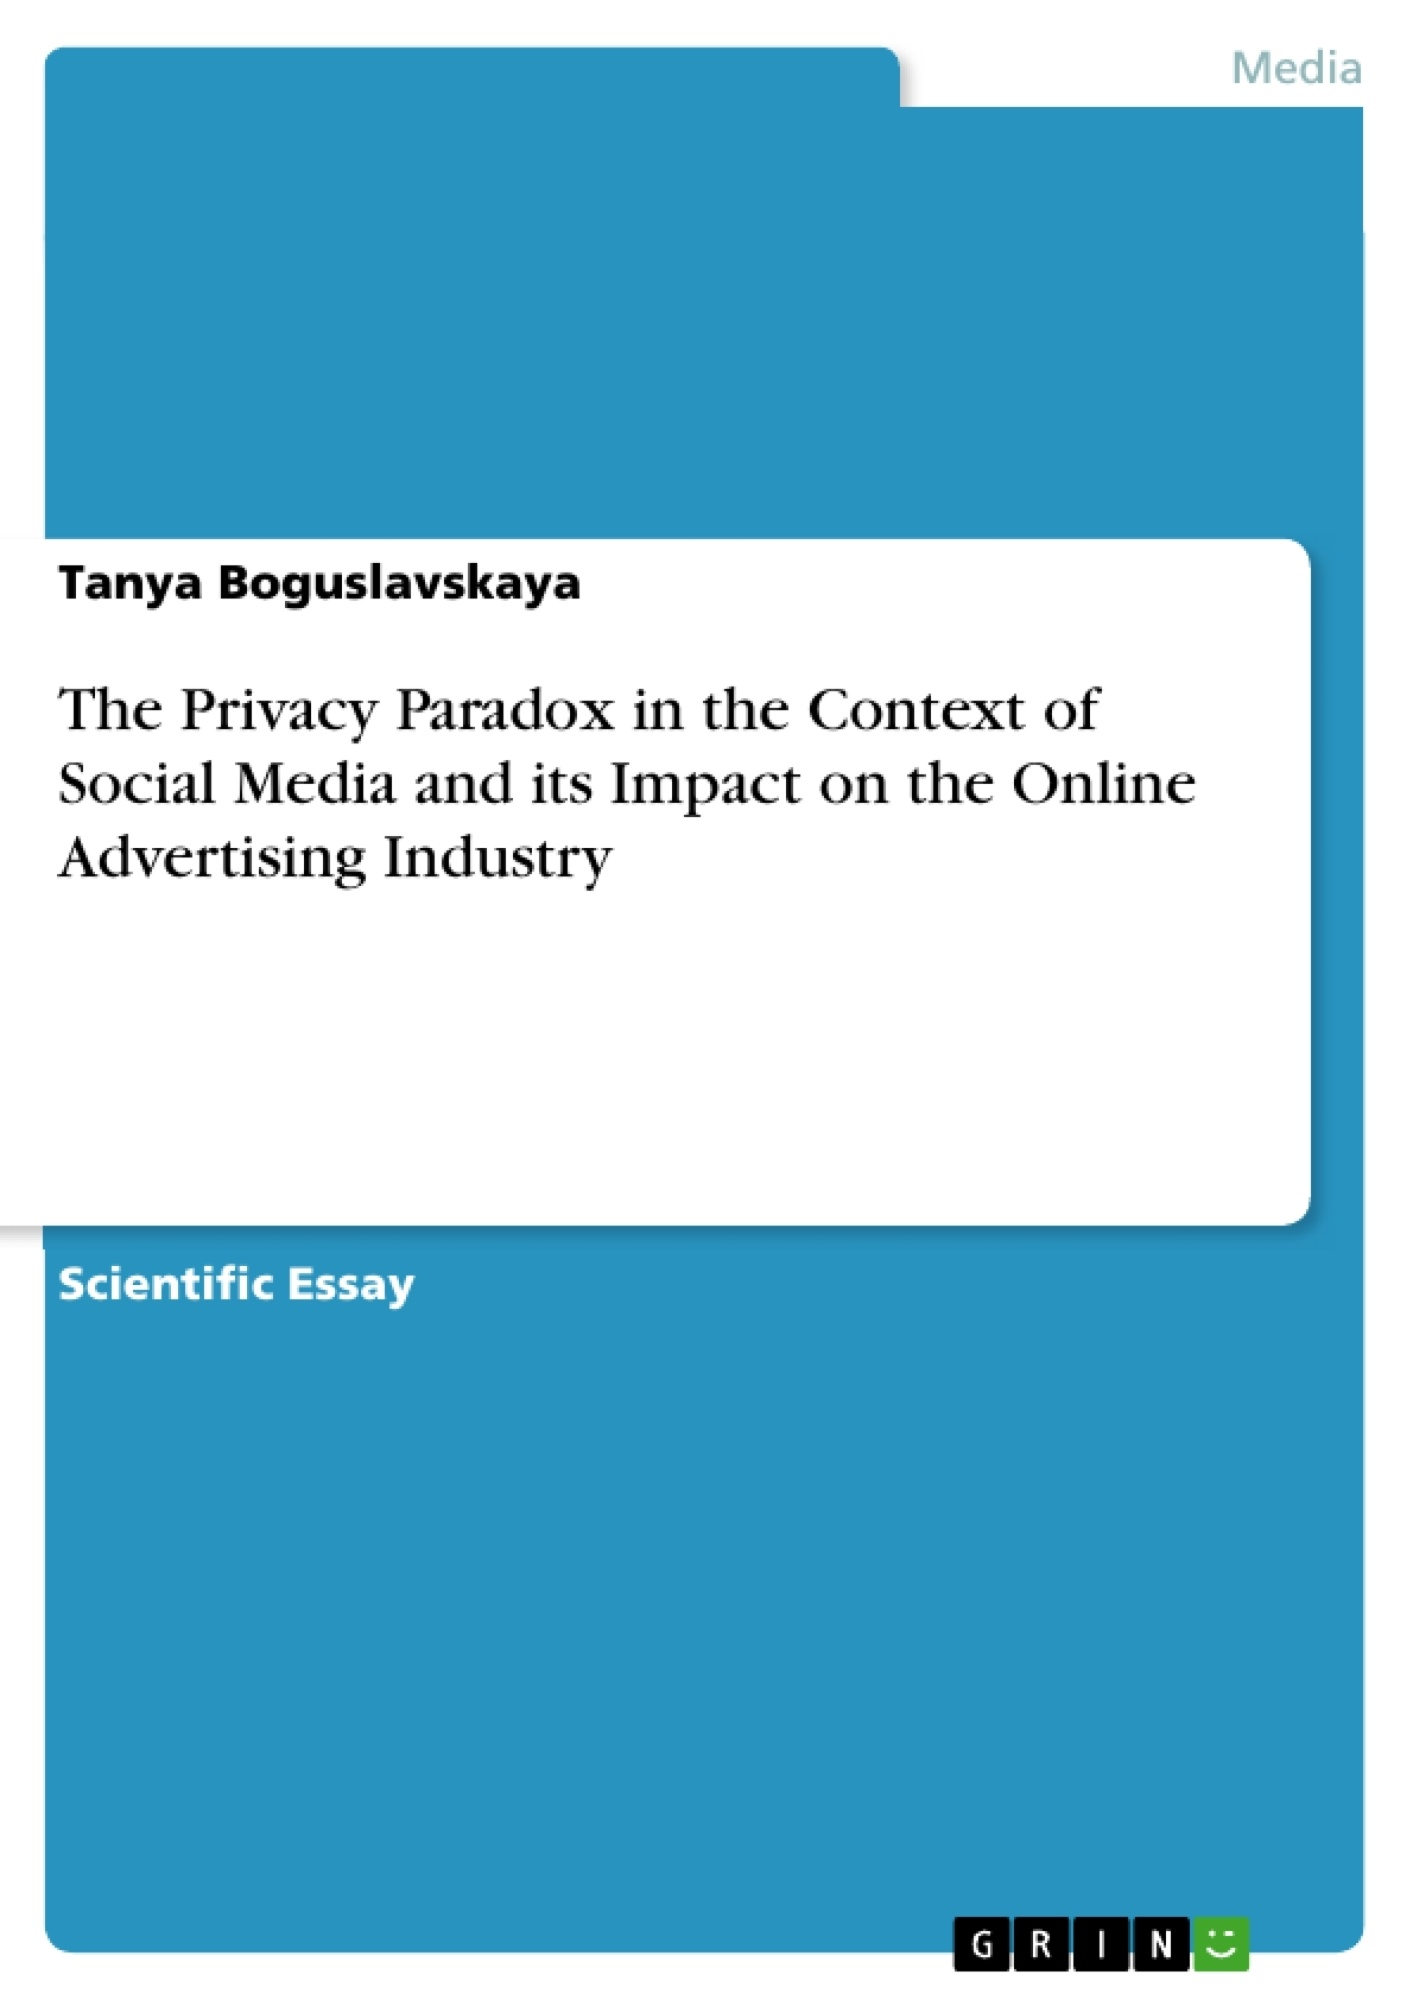 bachelor thesis social crm The effect of customer relationship management (crm) concept  a thesis submitted in partial fulfillment of the requirements for the degree  crm customer .